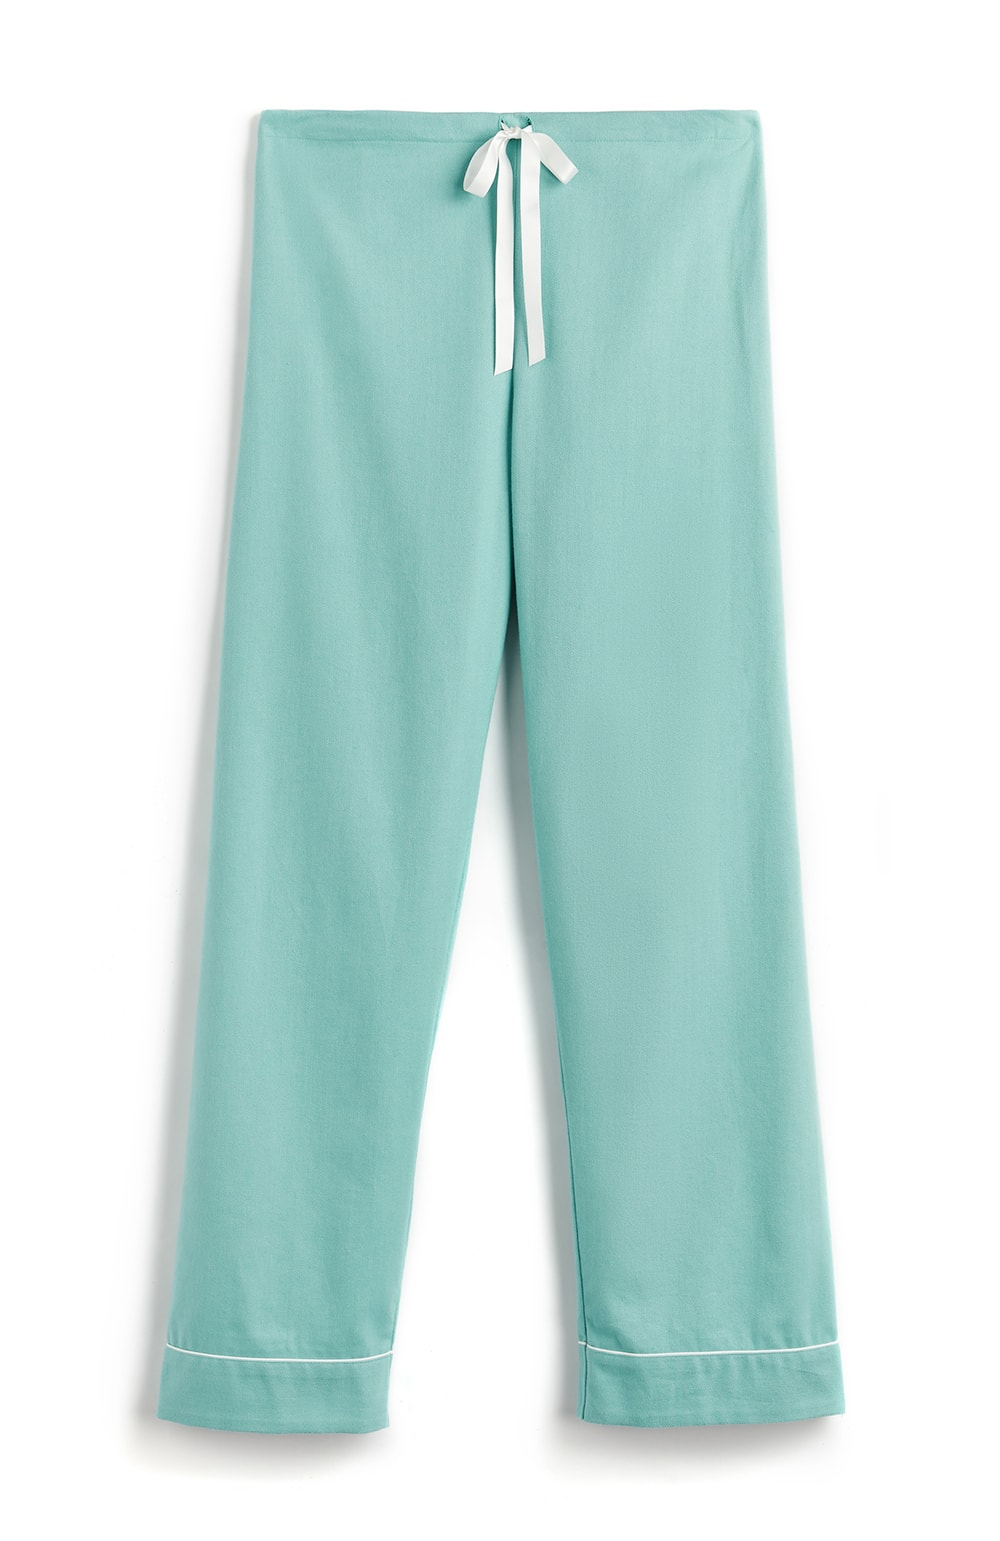 Brushed Pastel Pyjama Trousers (bltf) - Aqua Herringbone | Bonsoir of London